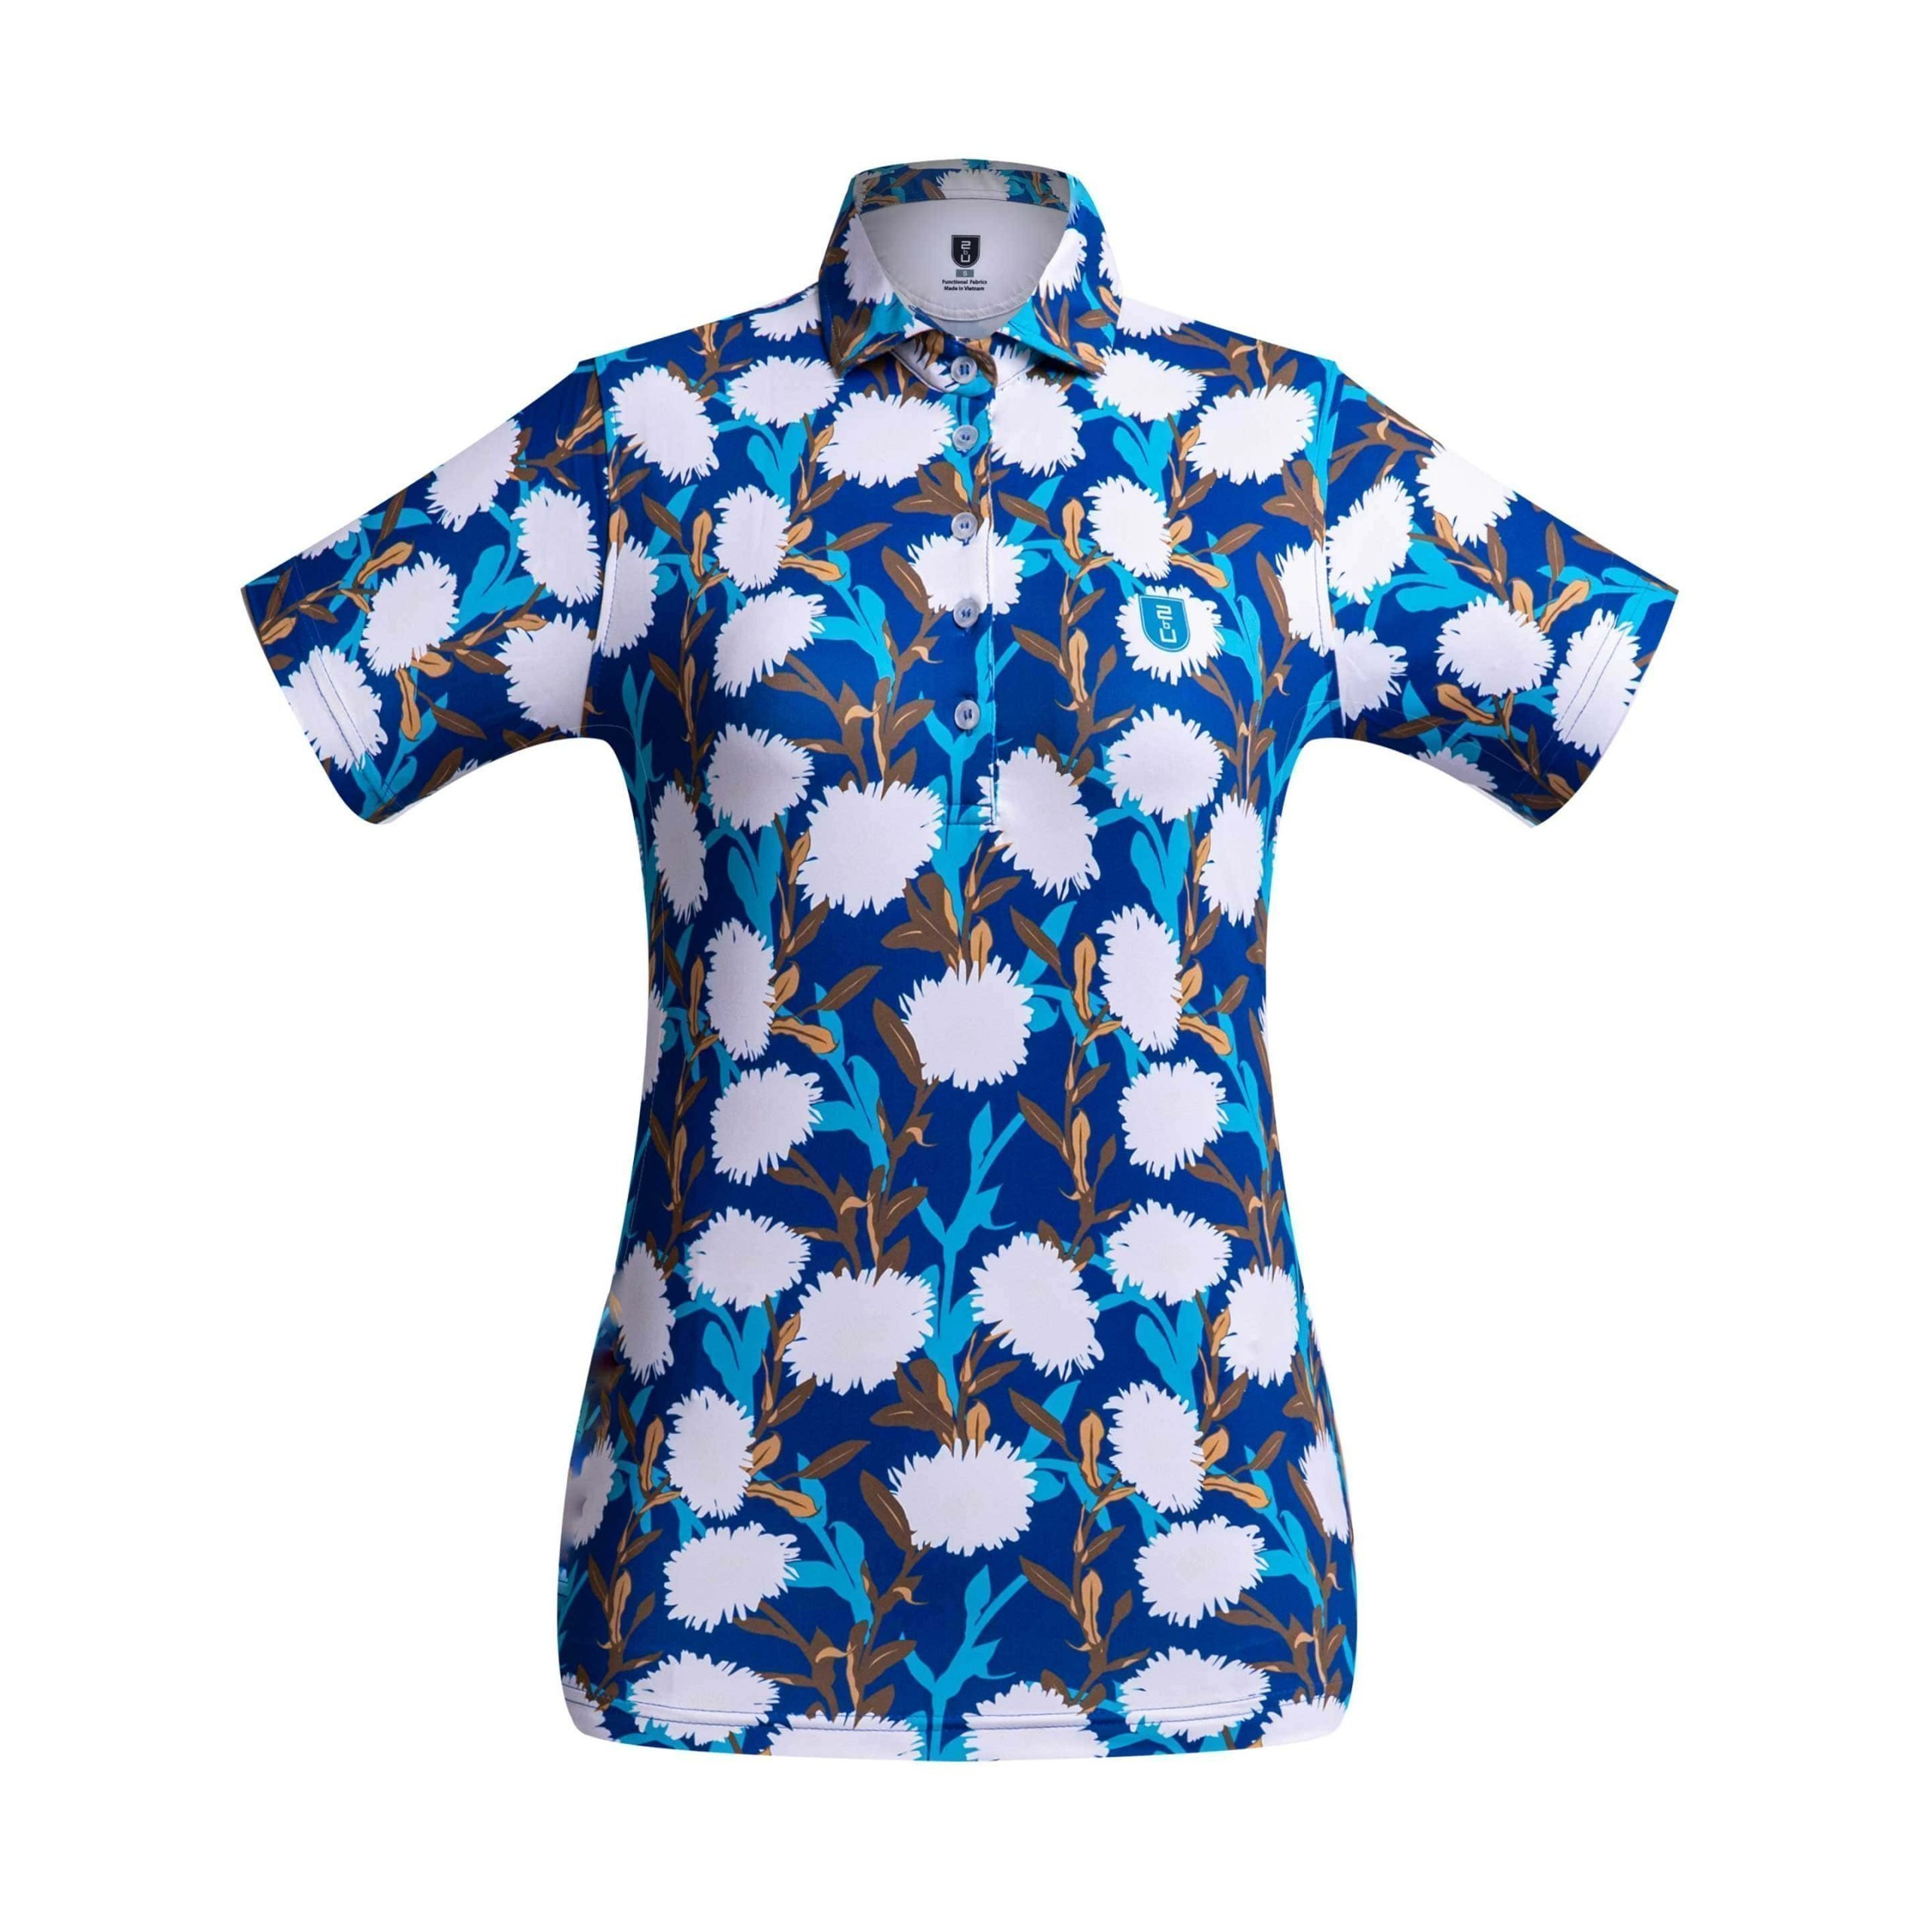 Golf shirt – Bright Blue Flower